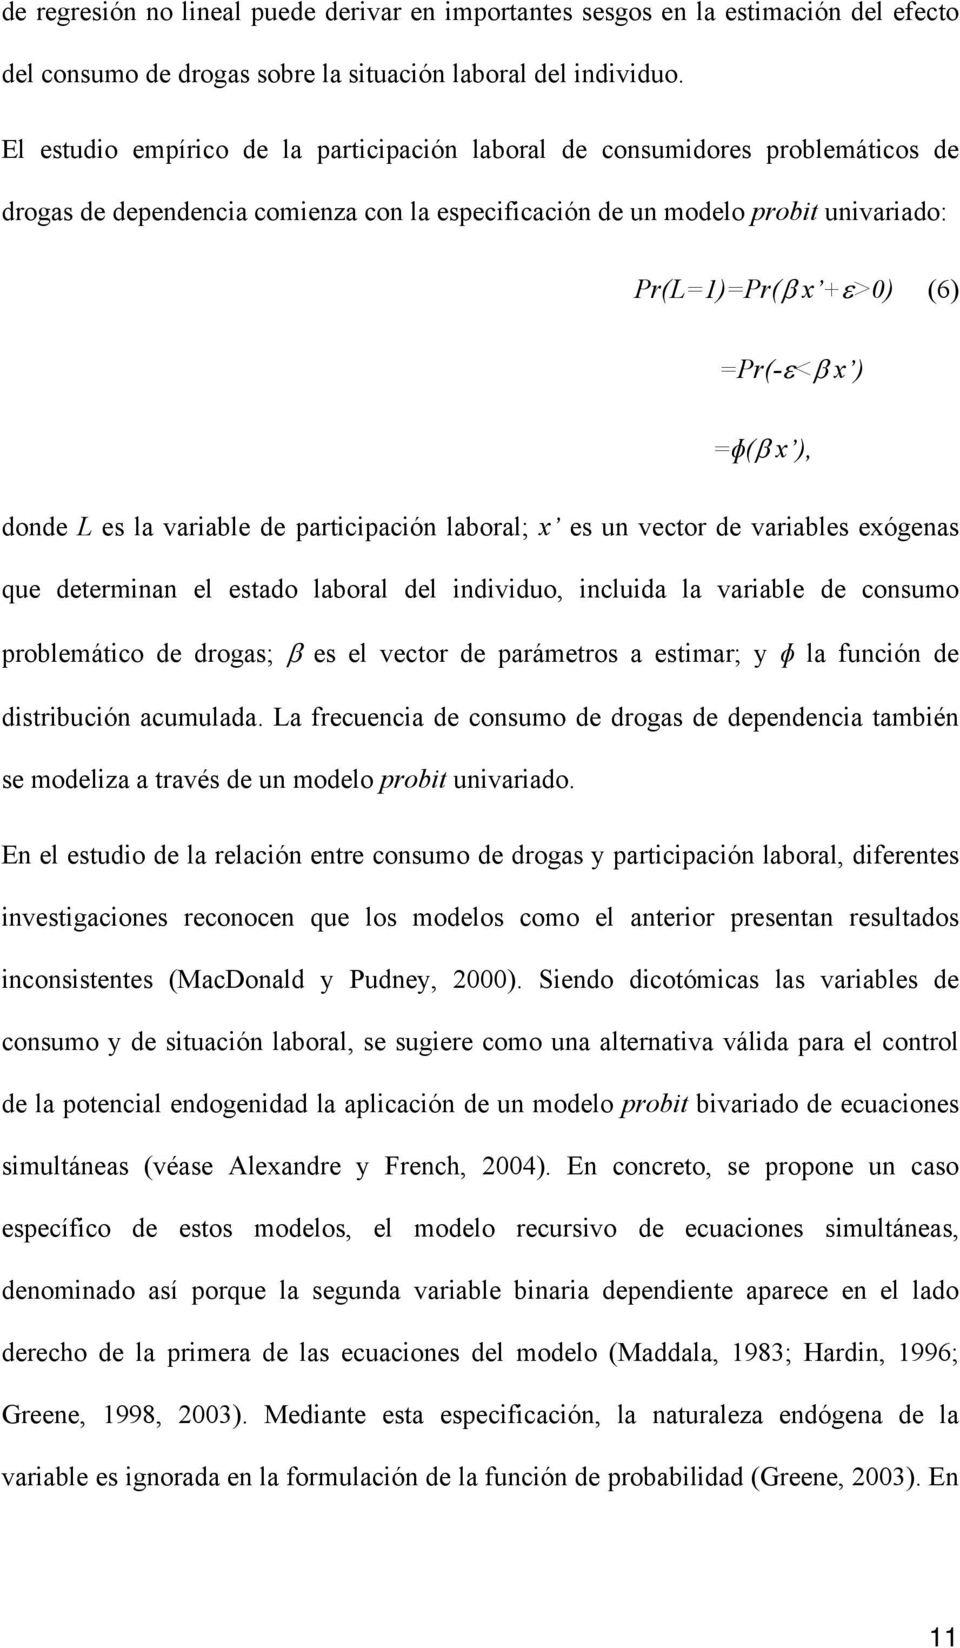 ) =ɸ( x ), donde L es la variable de participación laboral; x es un vector de variables exógenas que determinan el estado laboral del individuo, incluida la variable de consumo problemático de